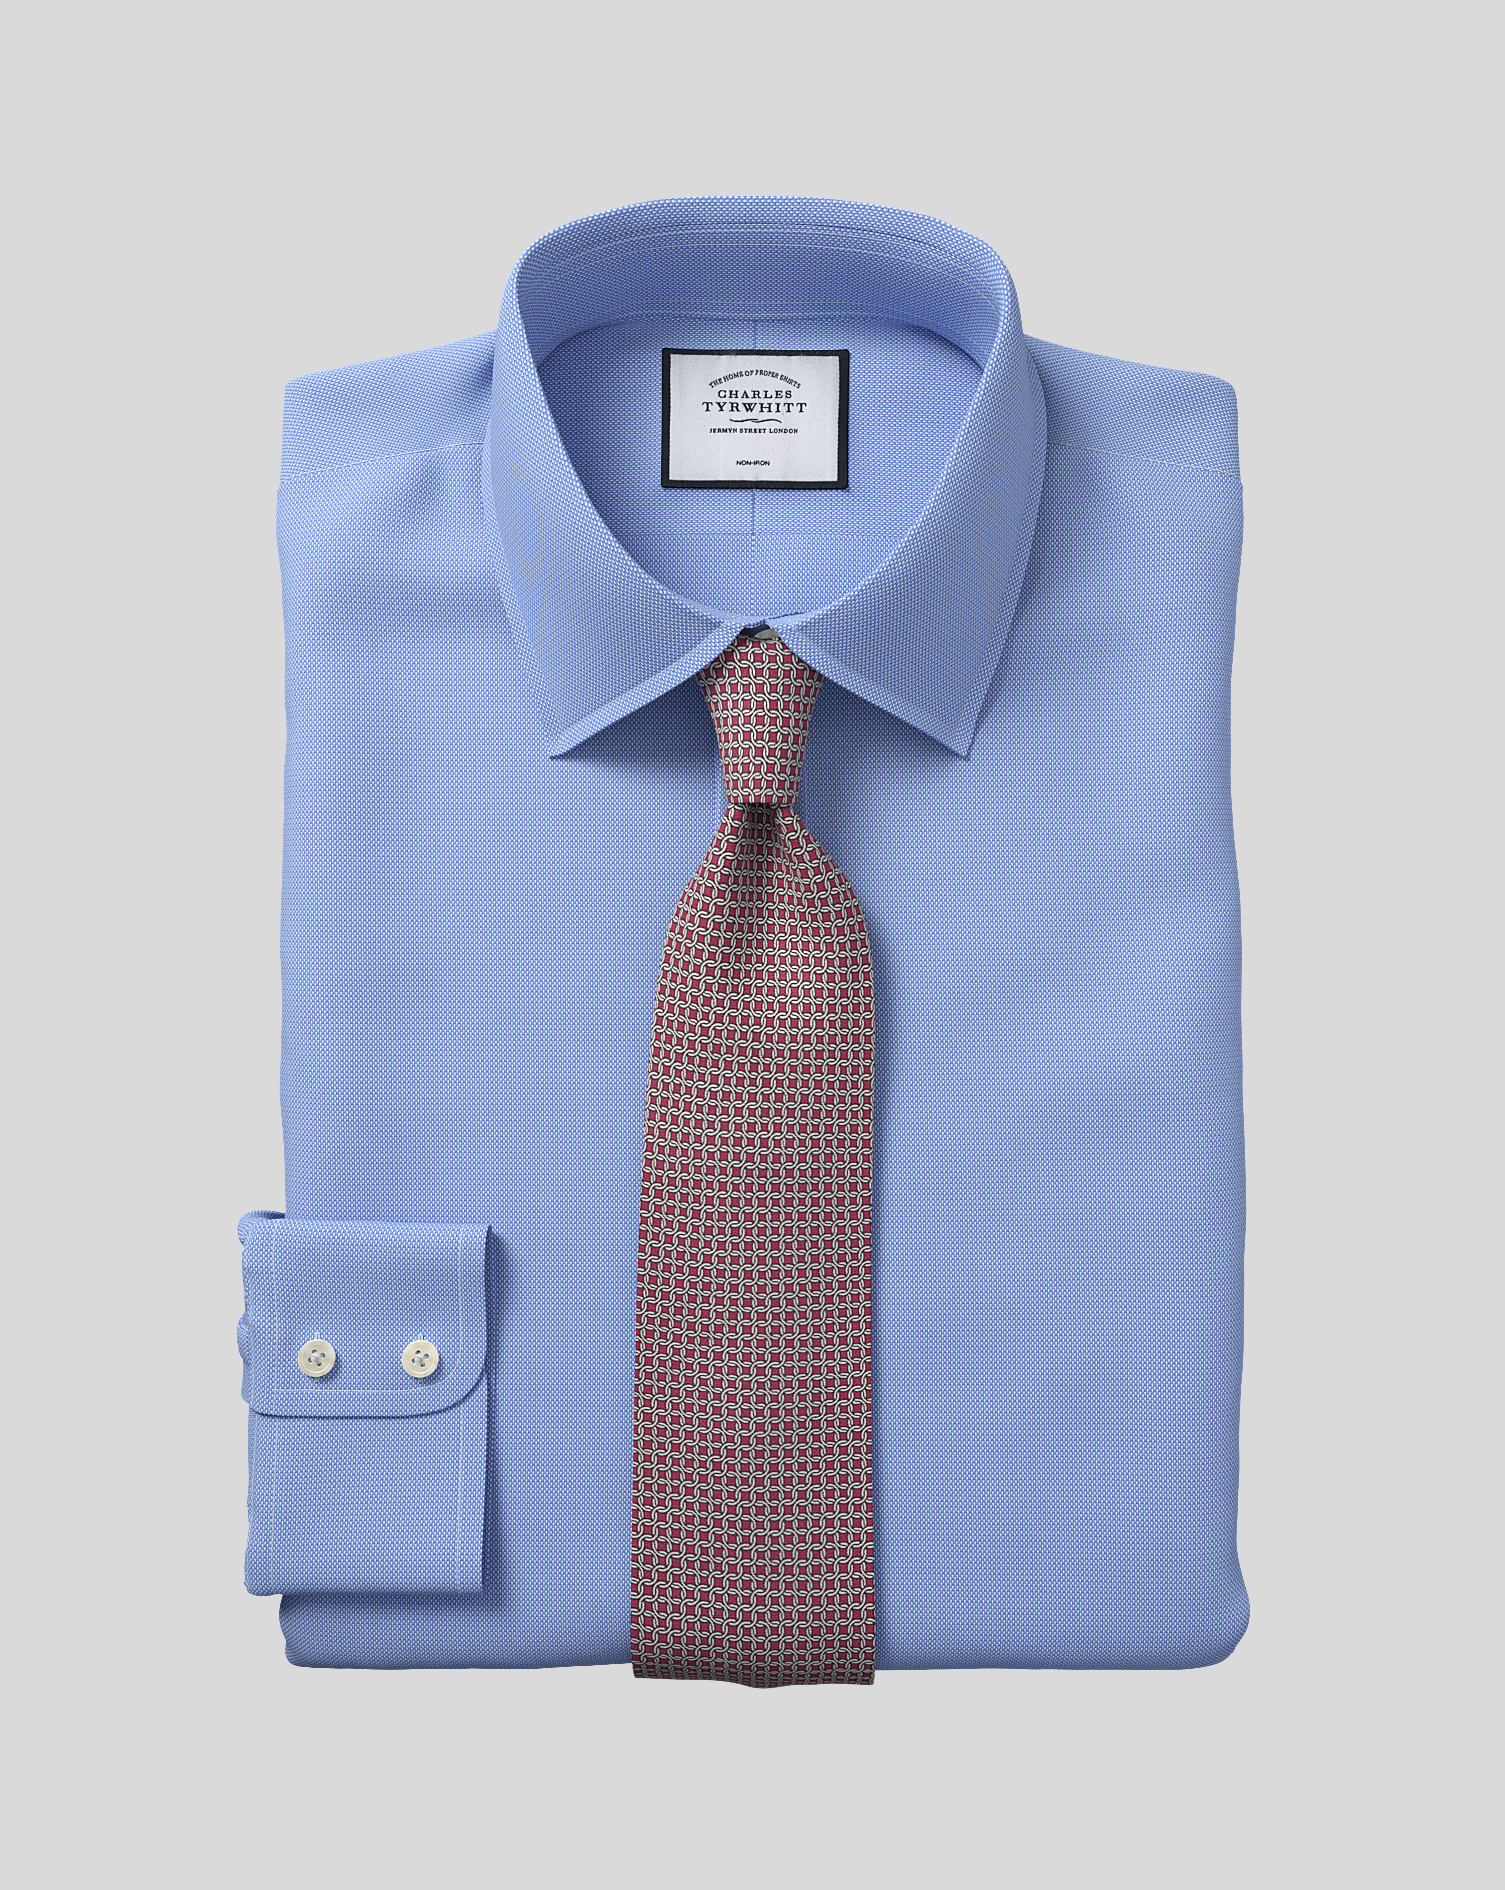 Classic Fit Non-Iron Blue Royal Panama Cotton Formal Shirt Single Cuff Size 17.5/36 by Charles Tyrwh